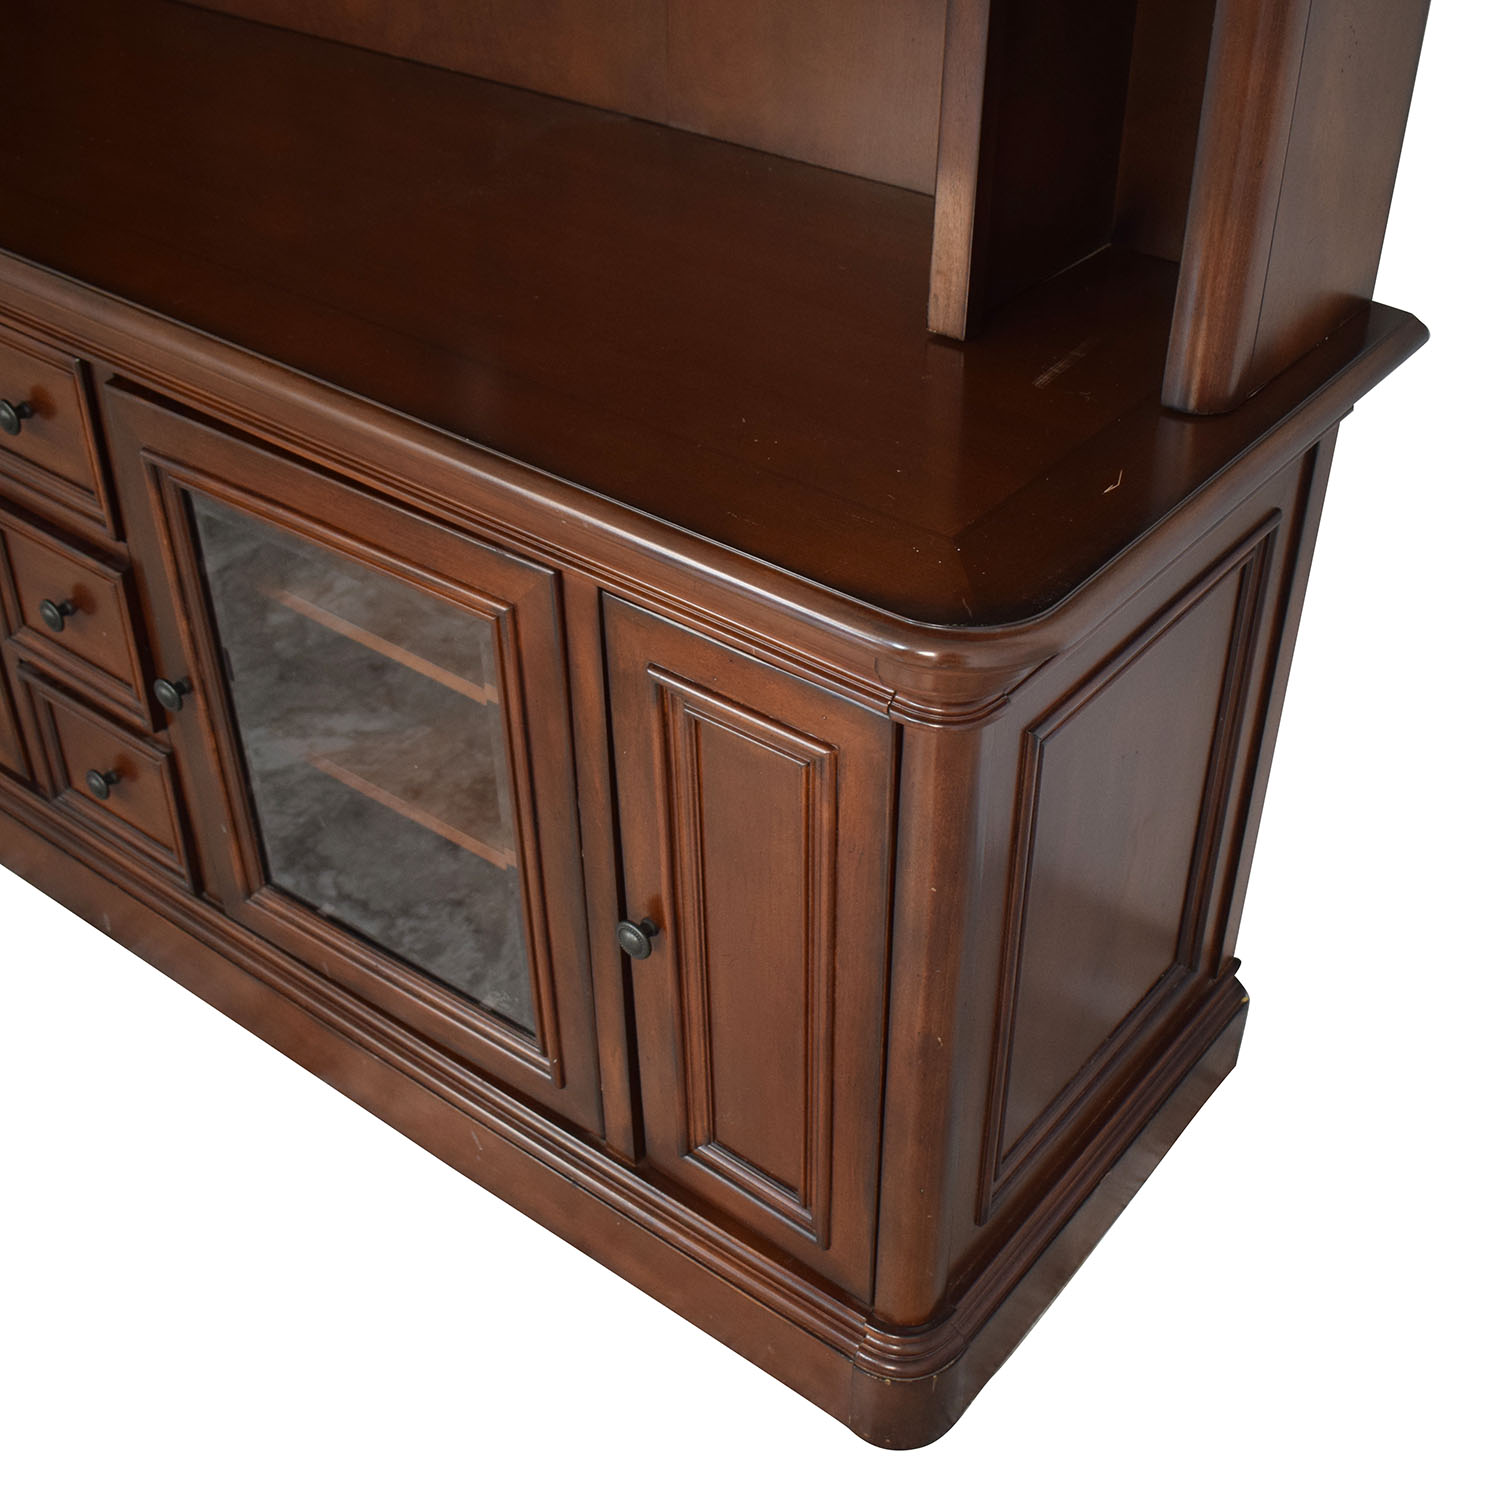 Golden Oak Furniture Golden Oak Furniture Entertainment Center used